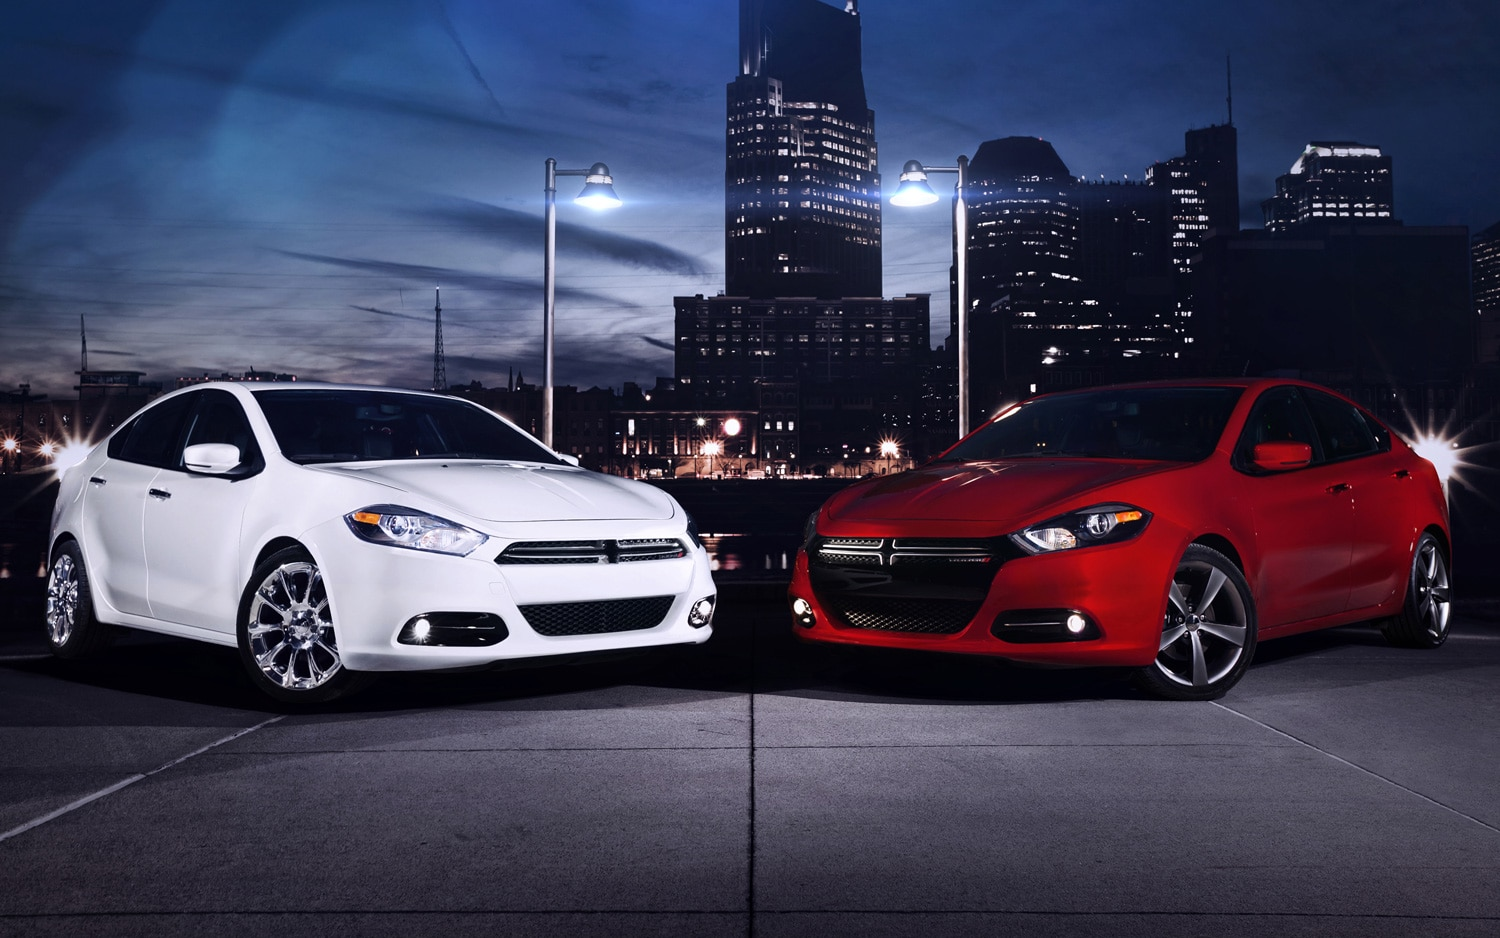 2013 Dodge Dart Pair1